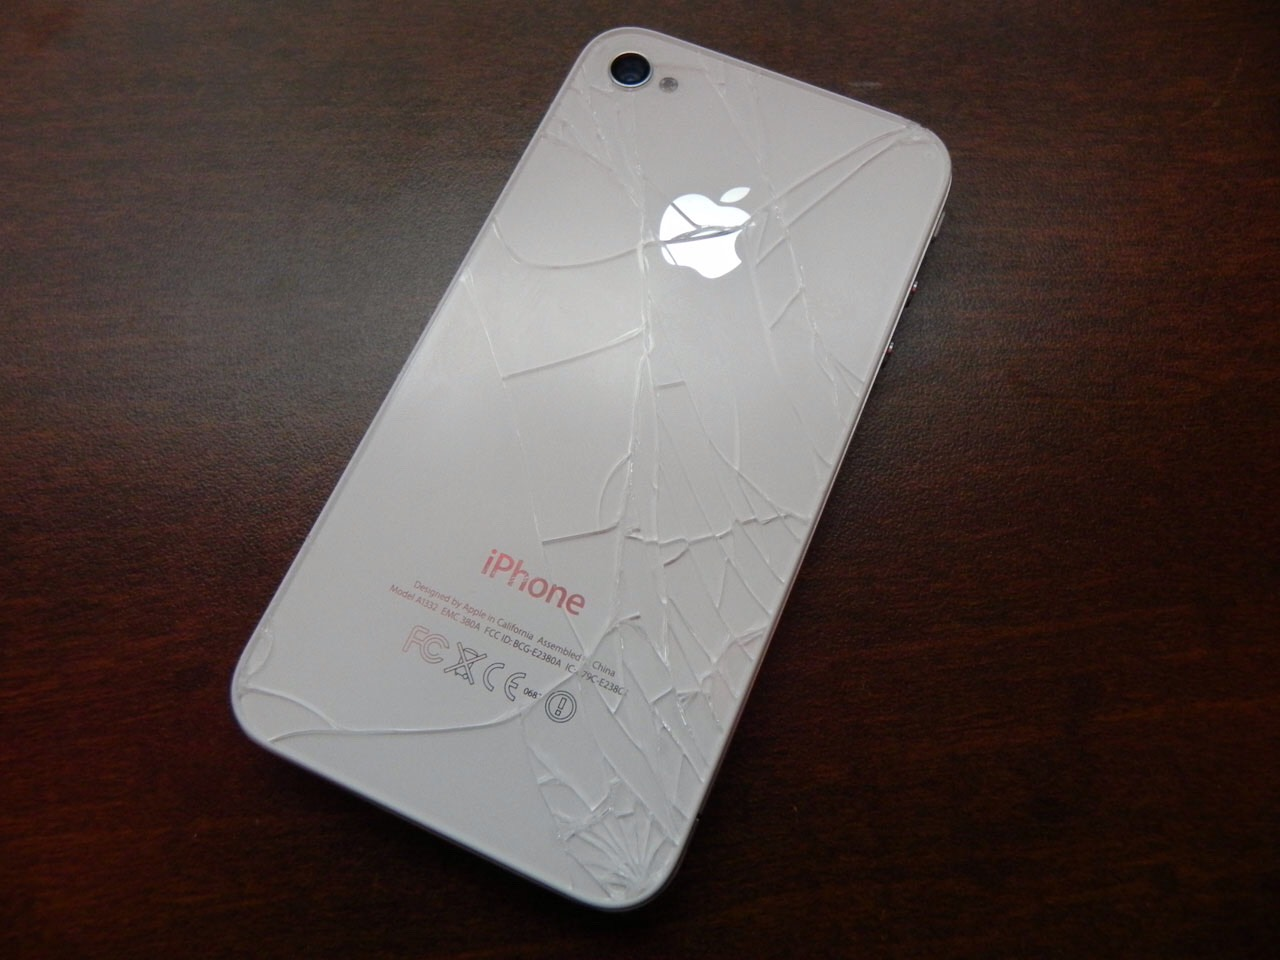 A cracked IPhone (but please do not purposely crack you phone to do this...)